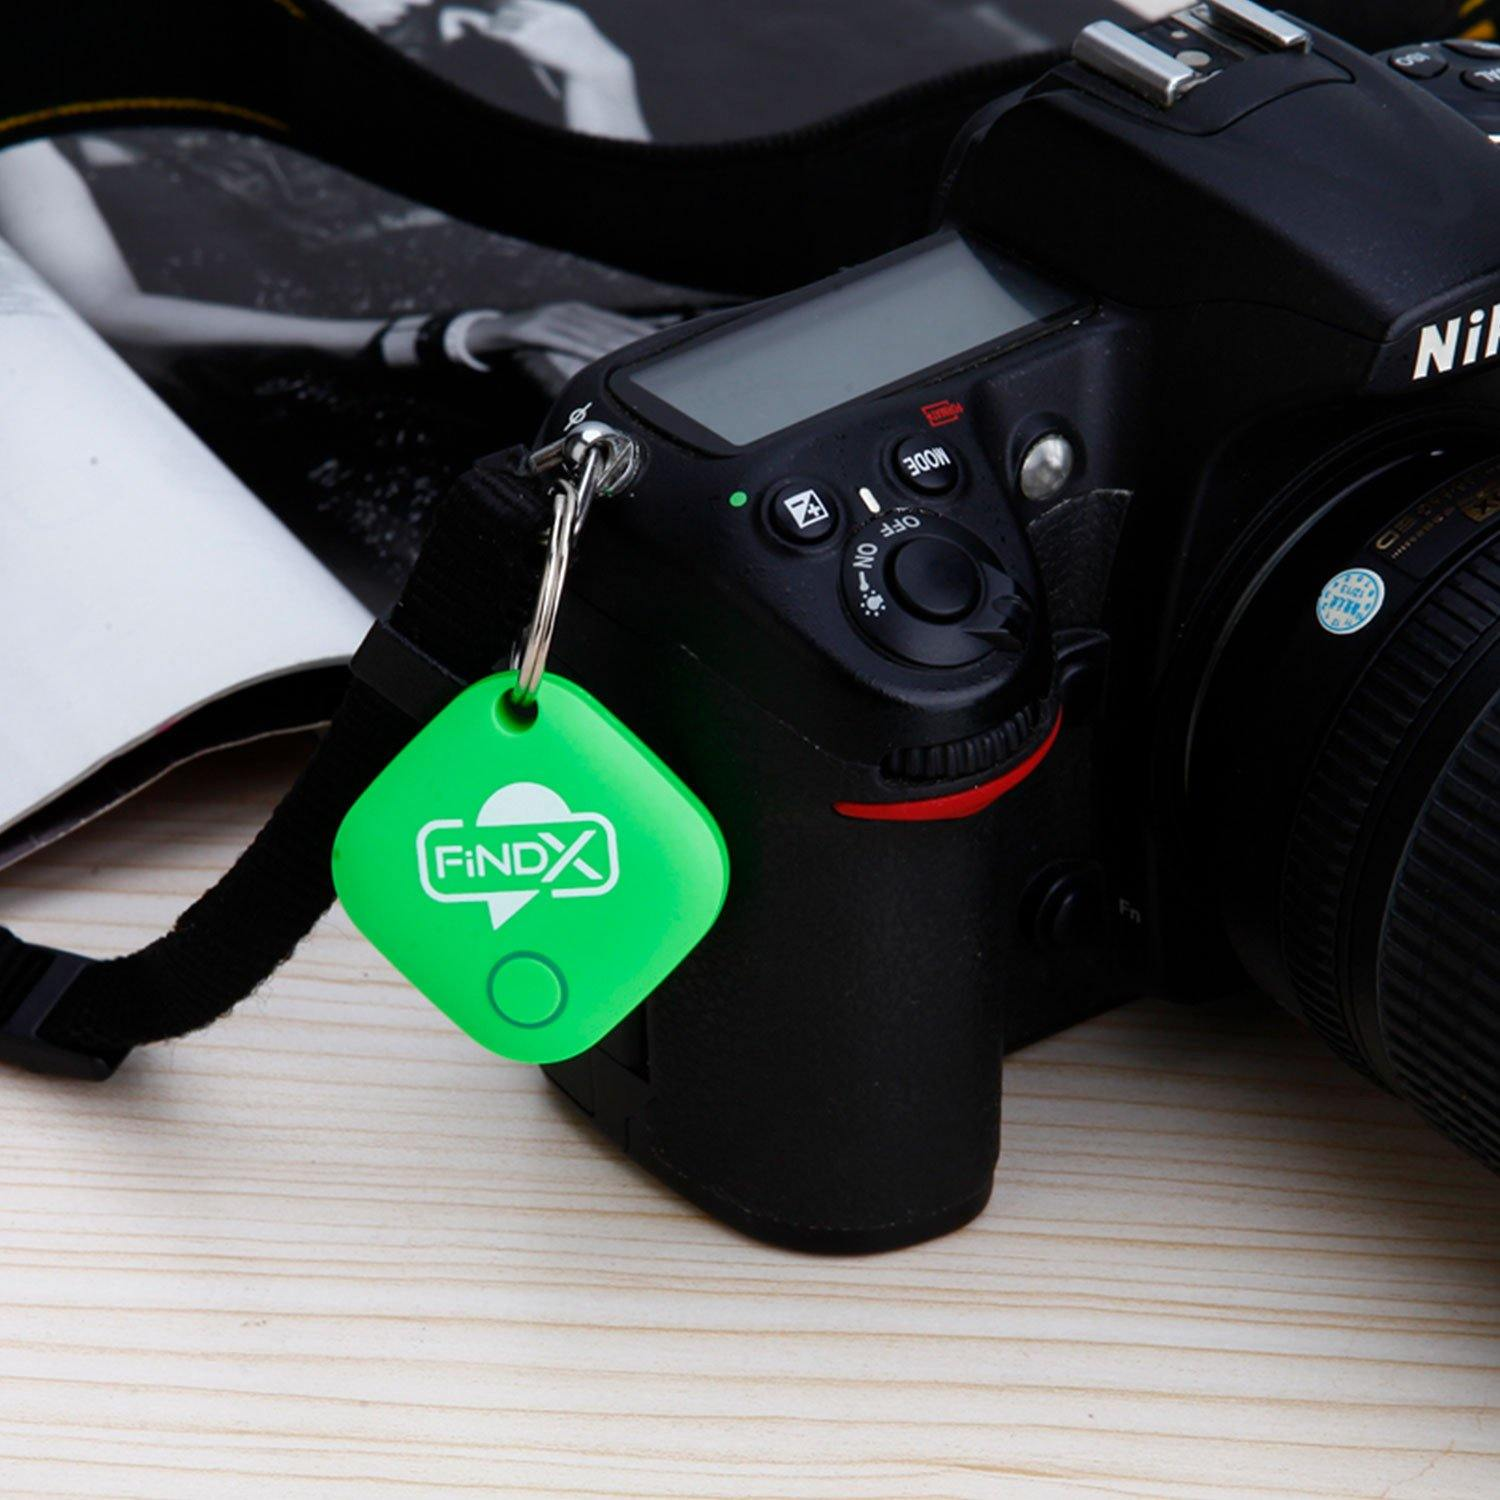 FindX Bluetooth Tracker - Green